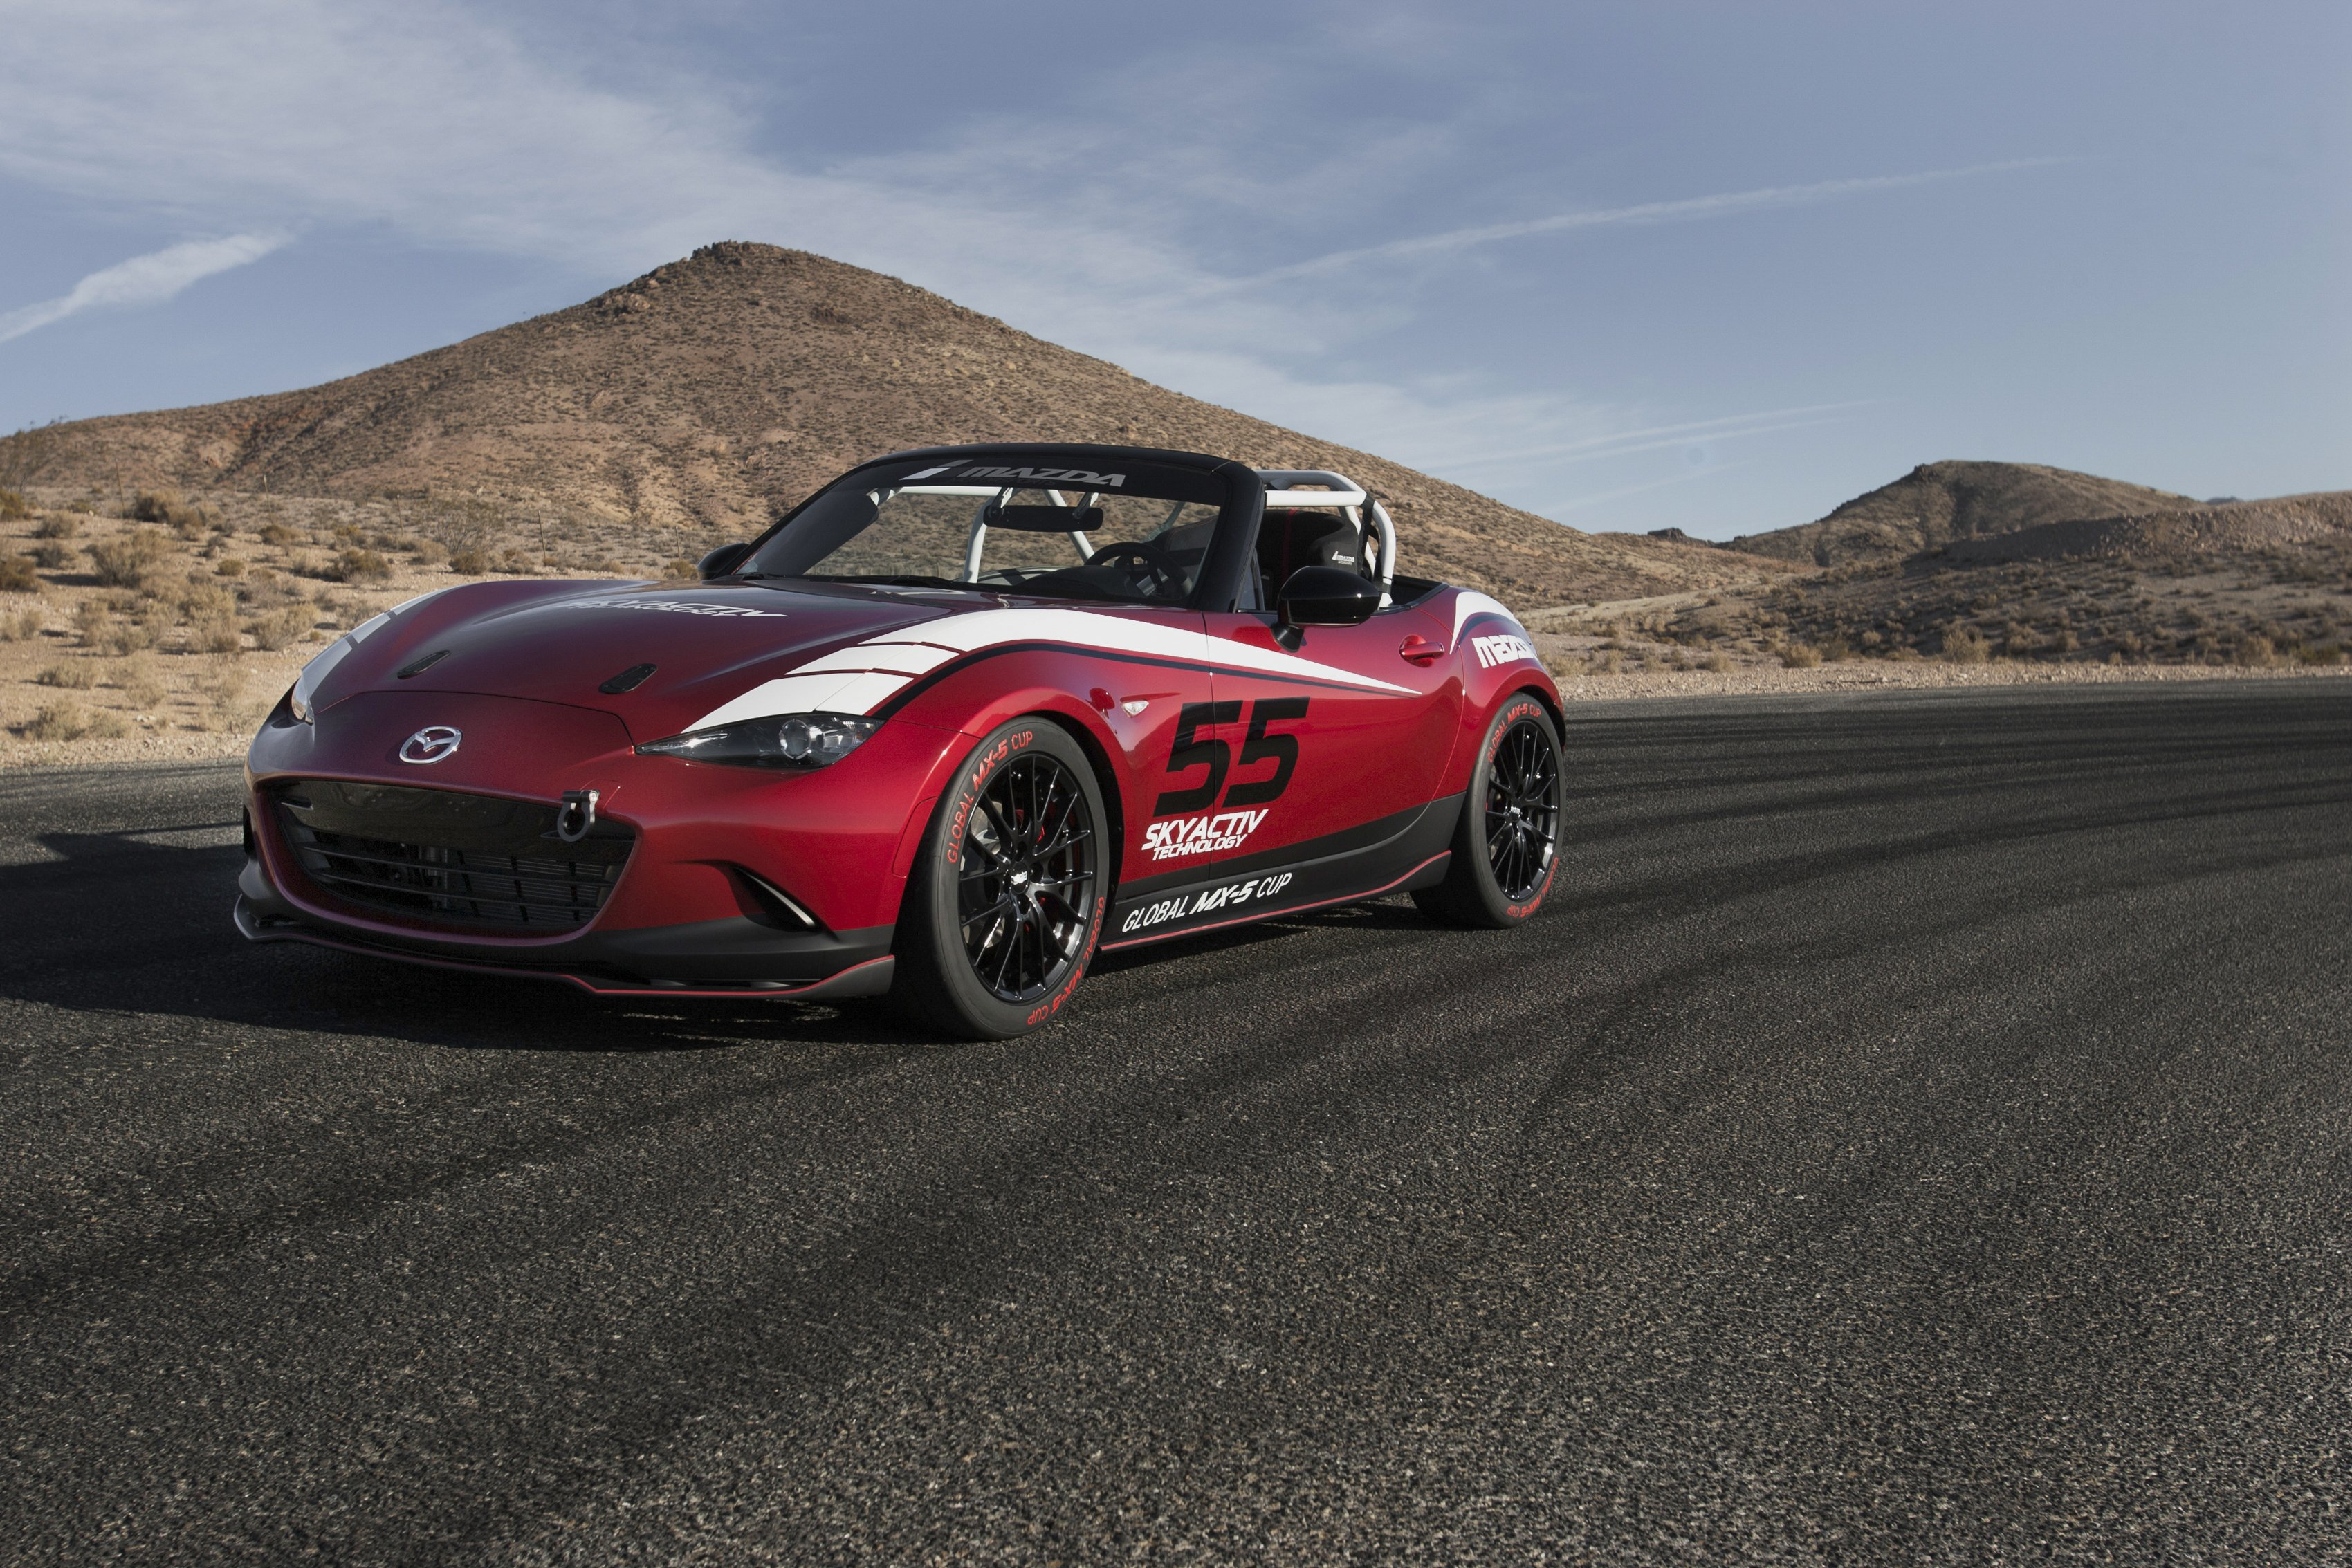 2014 mazda mx 5 cup concept n d race racing tuning. Black Bedroom Furniture Sets. Home Design Ideas